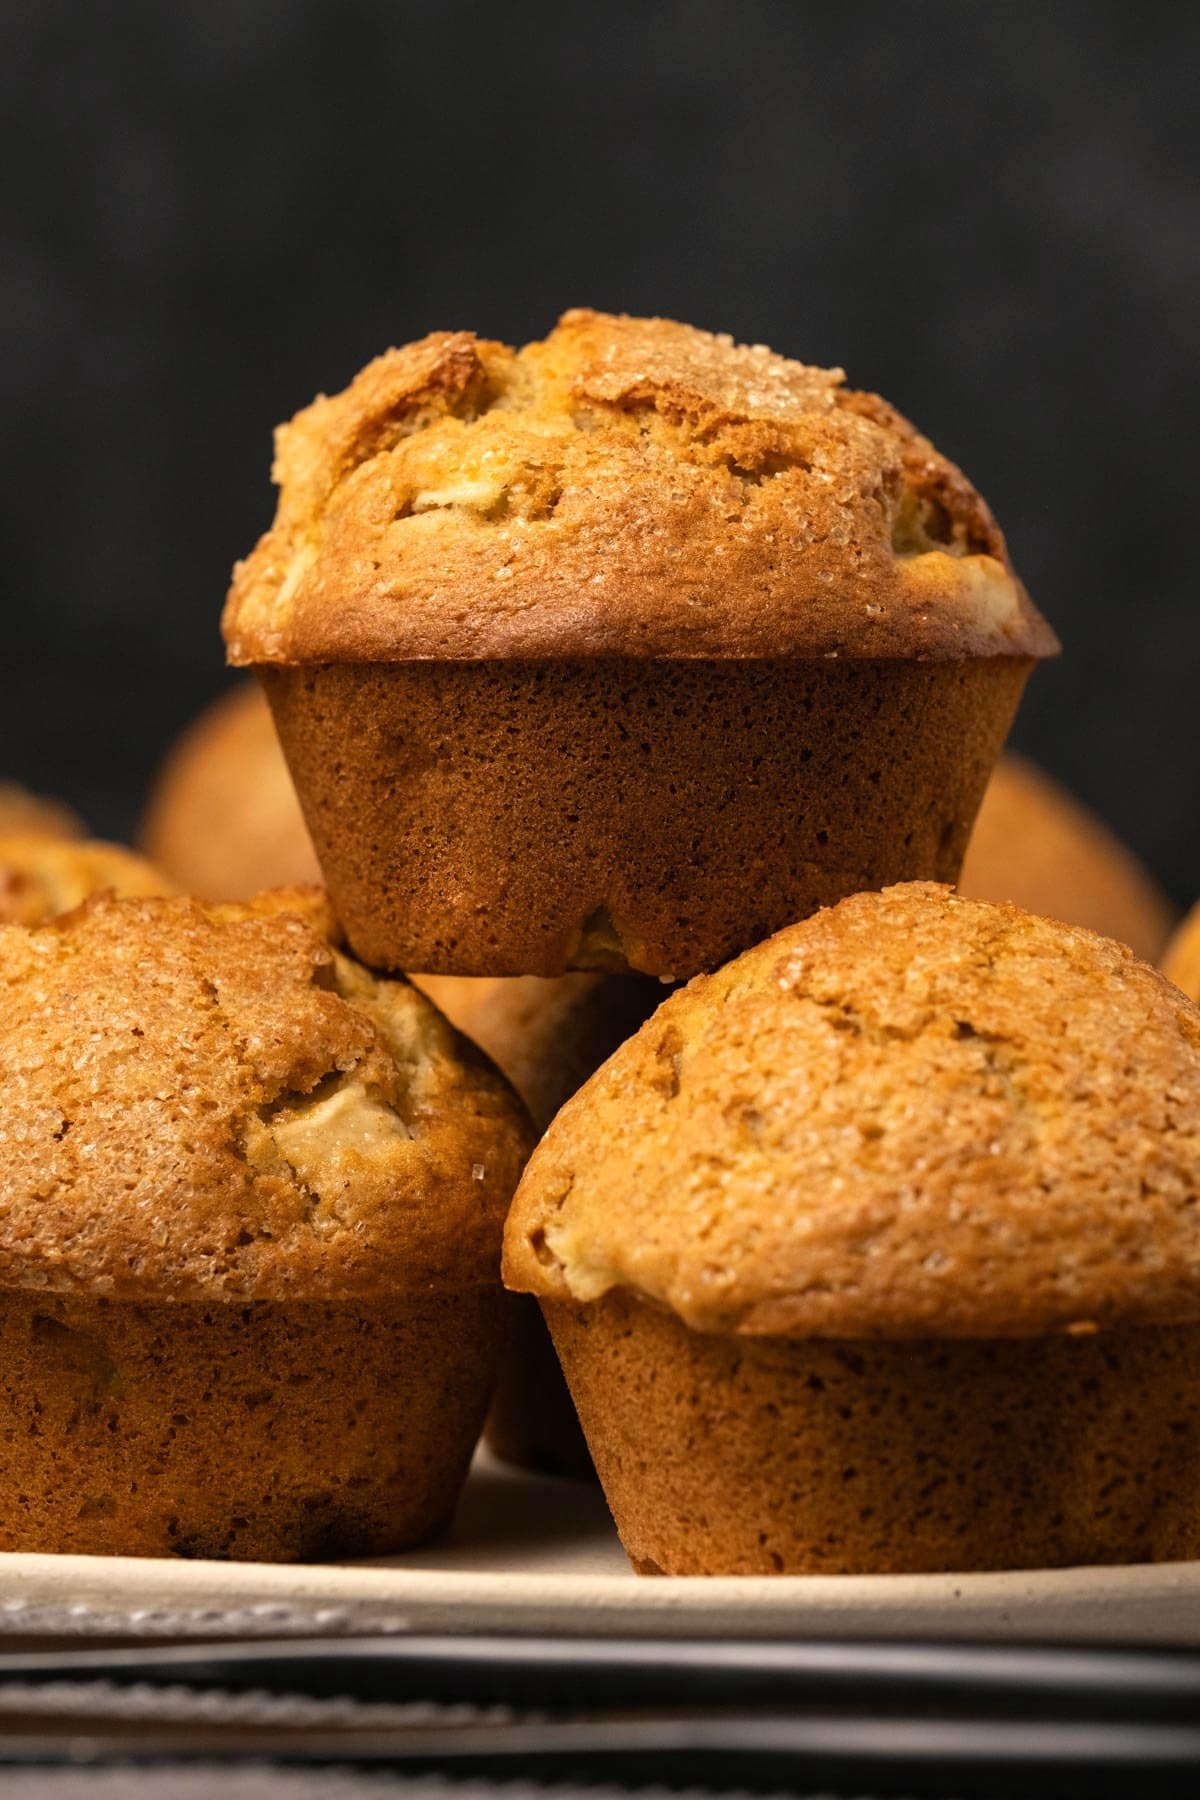 Apple muffins in a stack on a plate.